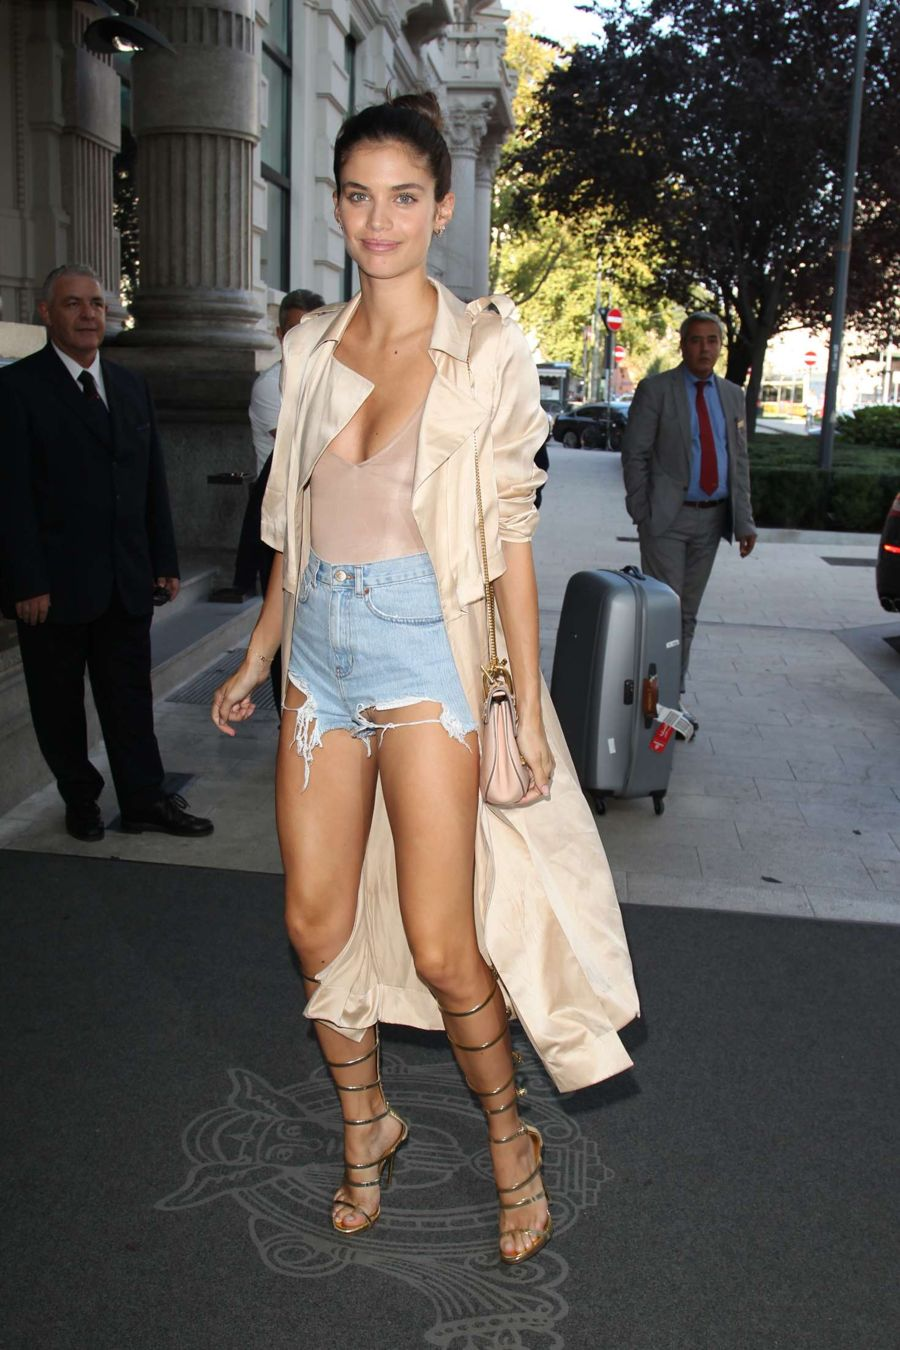 Sara Sampaio in Jeans Shorts Arrives at Hotel in Milan